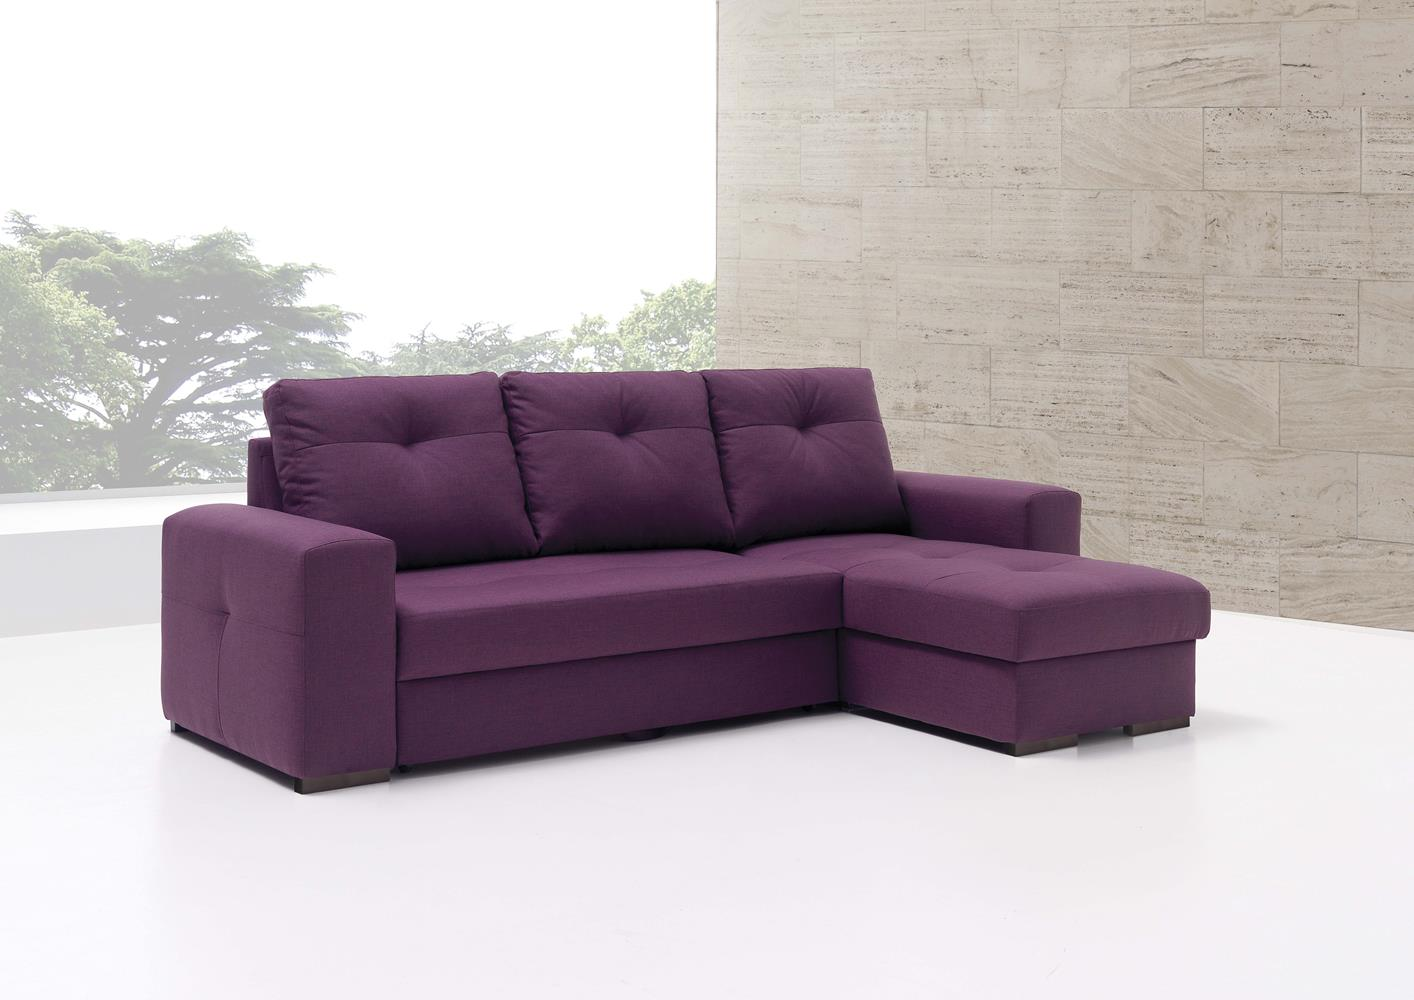 acheter votre canap lit chaise longue en tissu violet. Black Bedroom Furniture Sets. Home Design Ideas